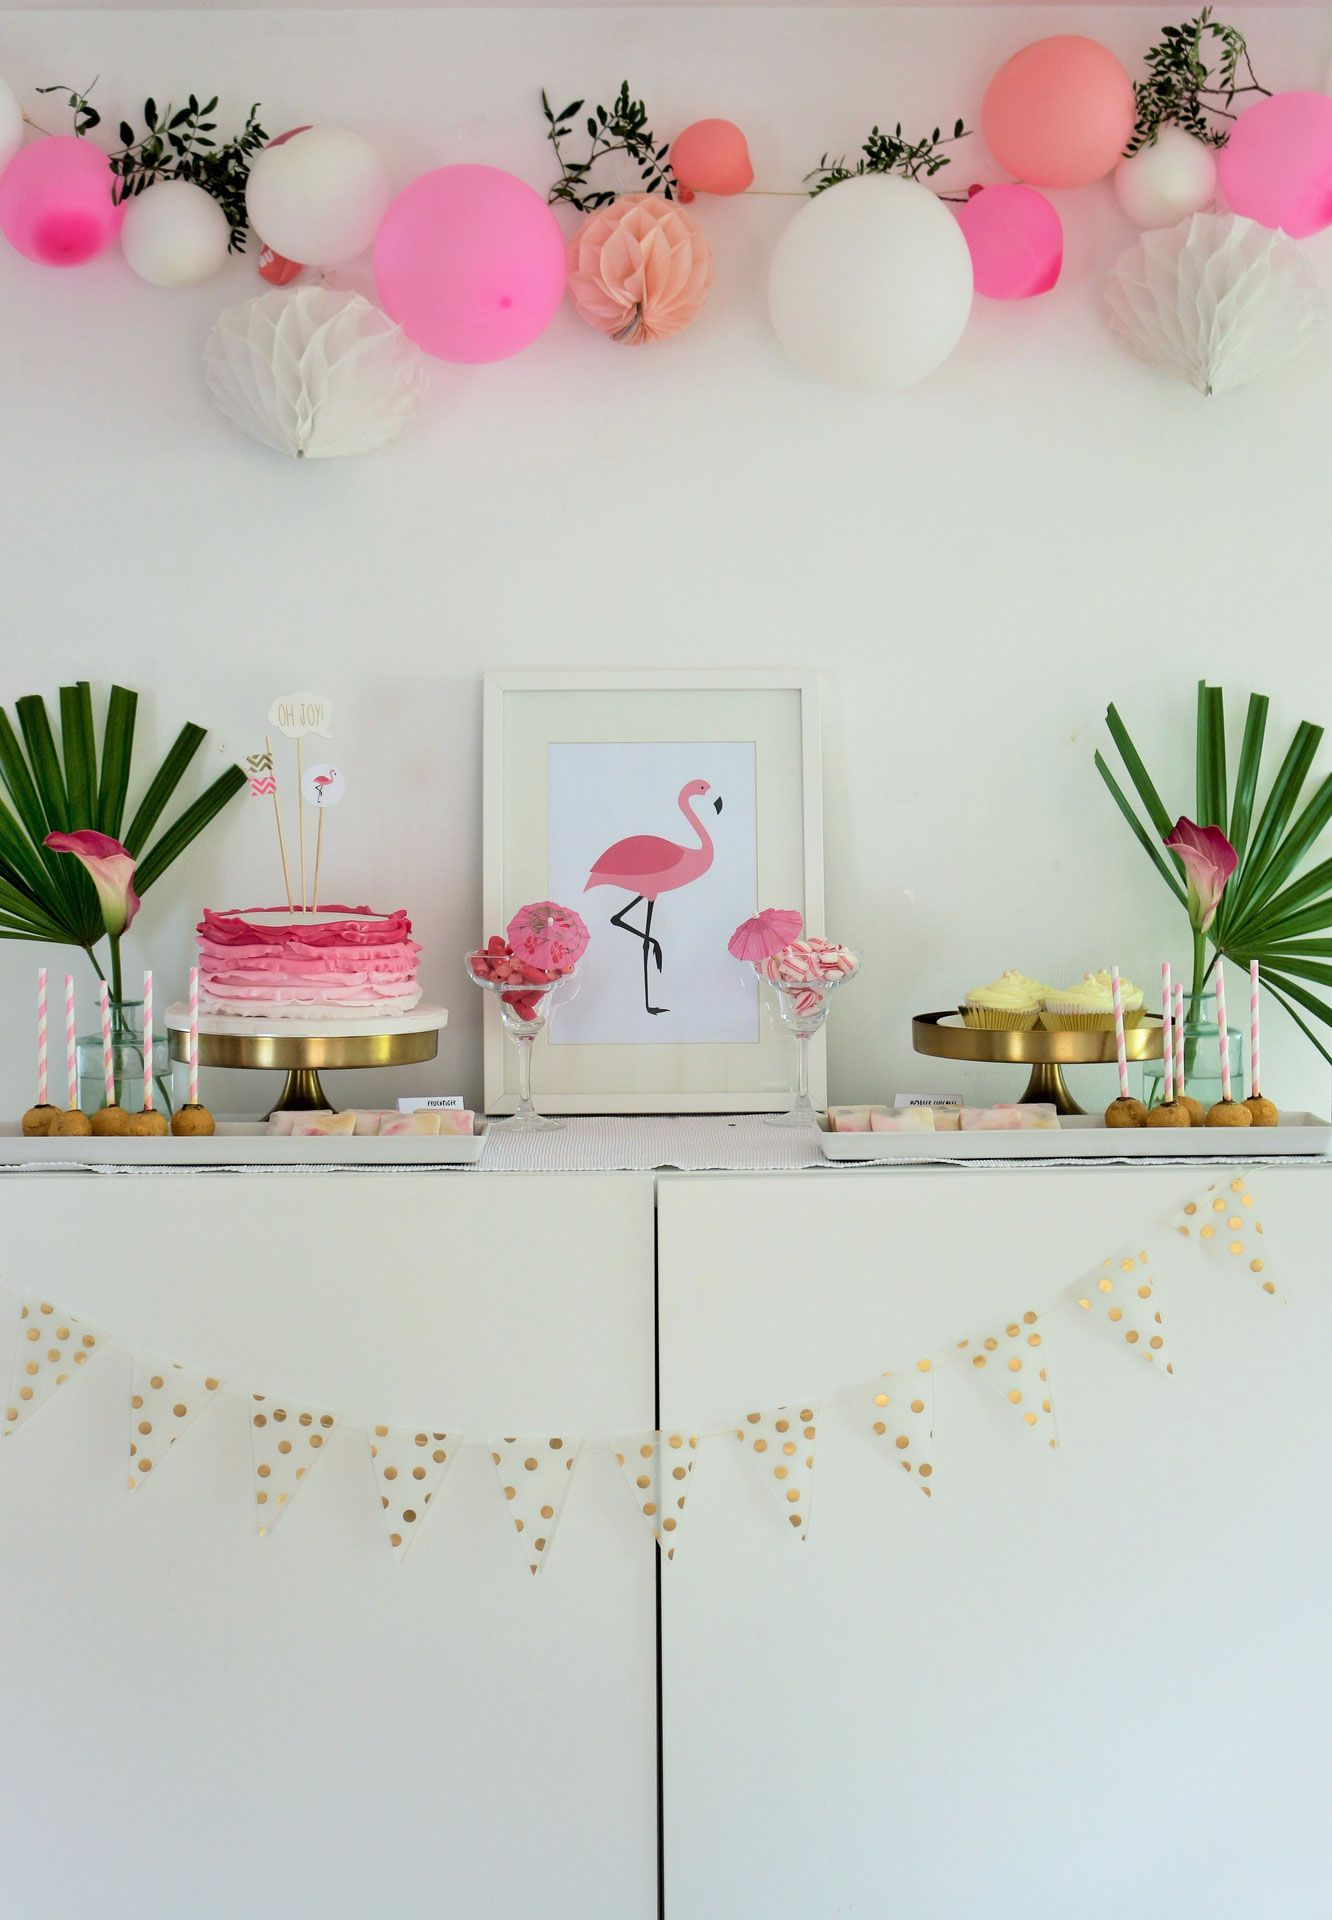 Deko Ideen Party Flamingo Party Diy Deko Ideen Festivities 18th Birthday Party